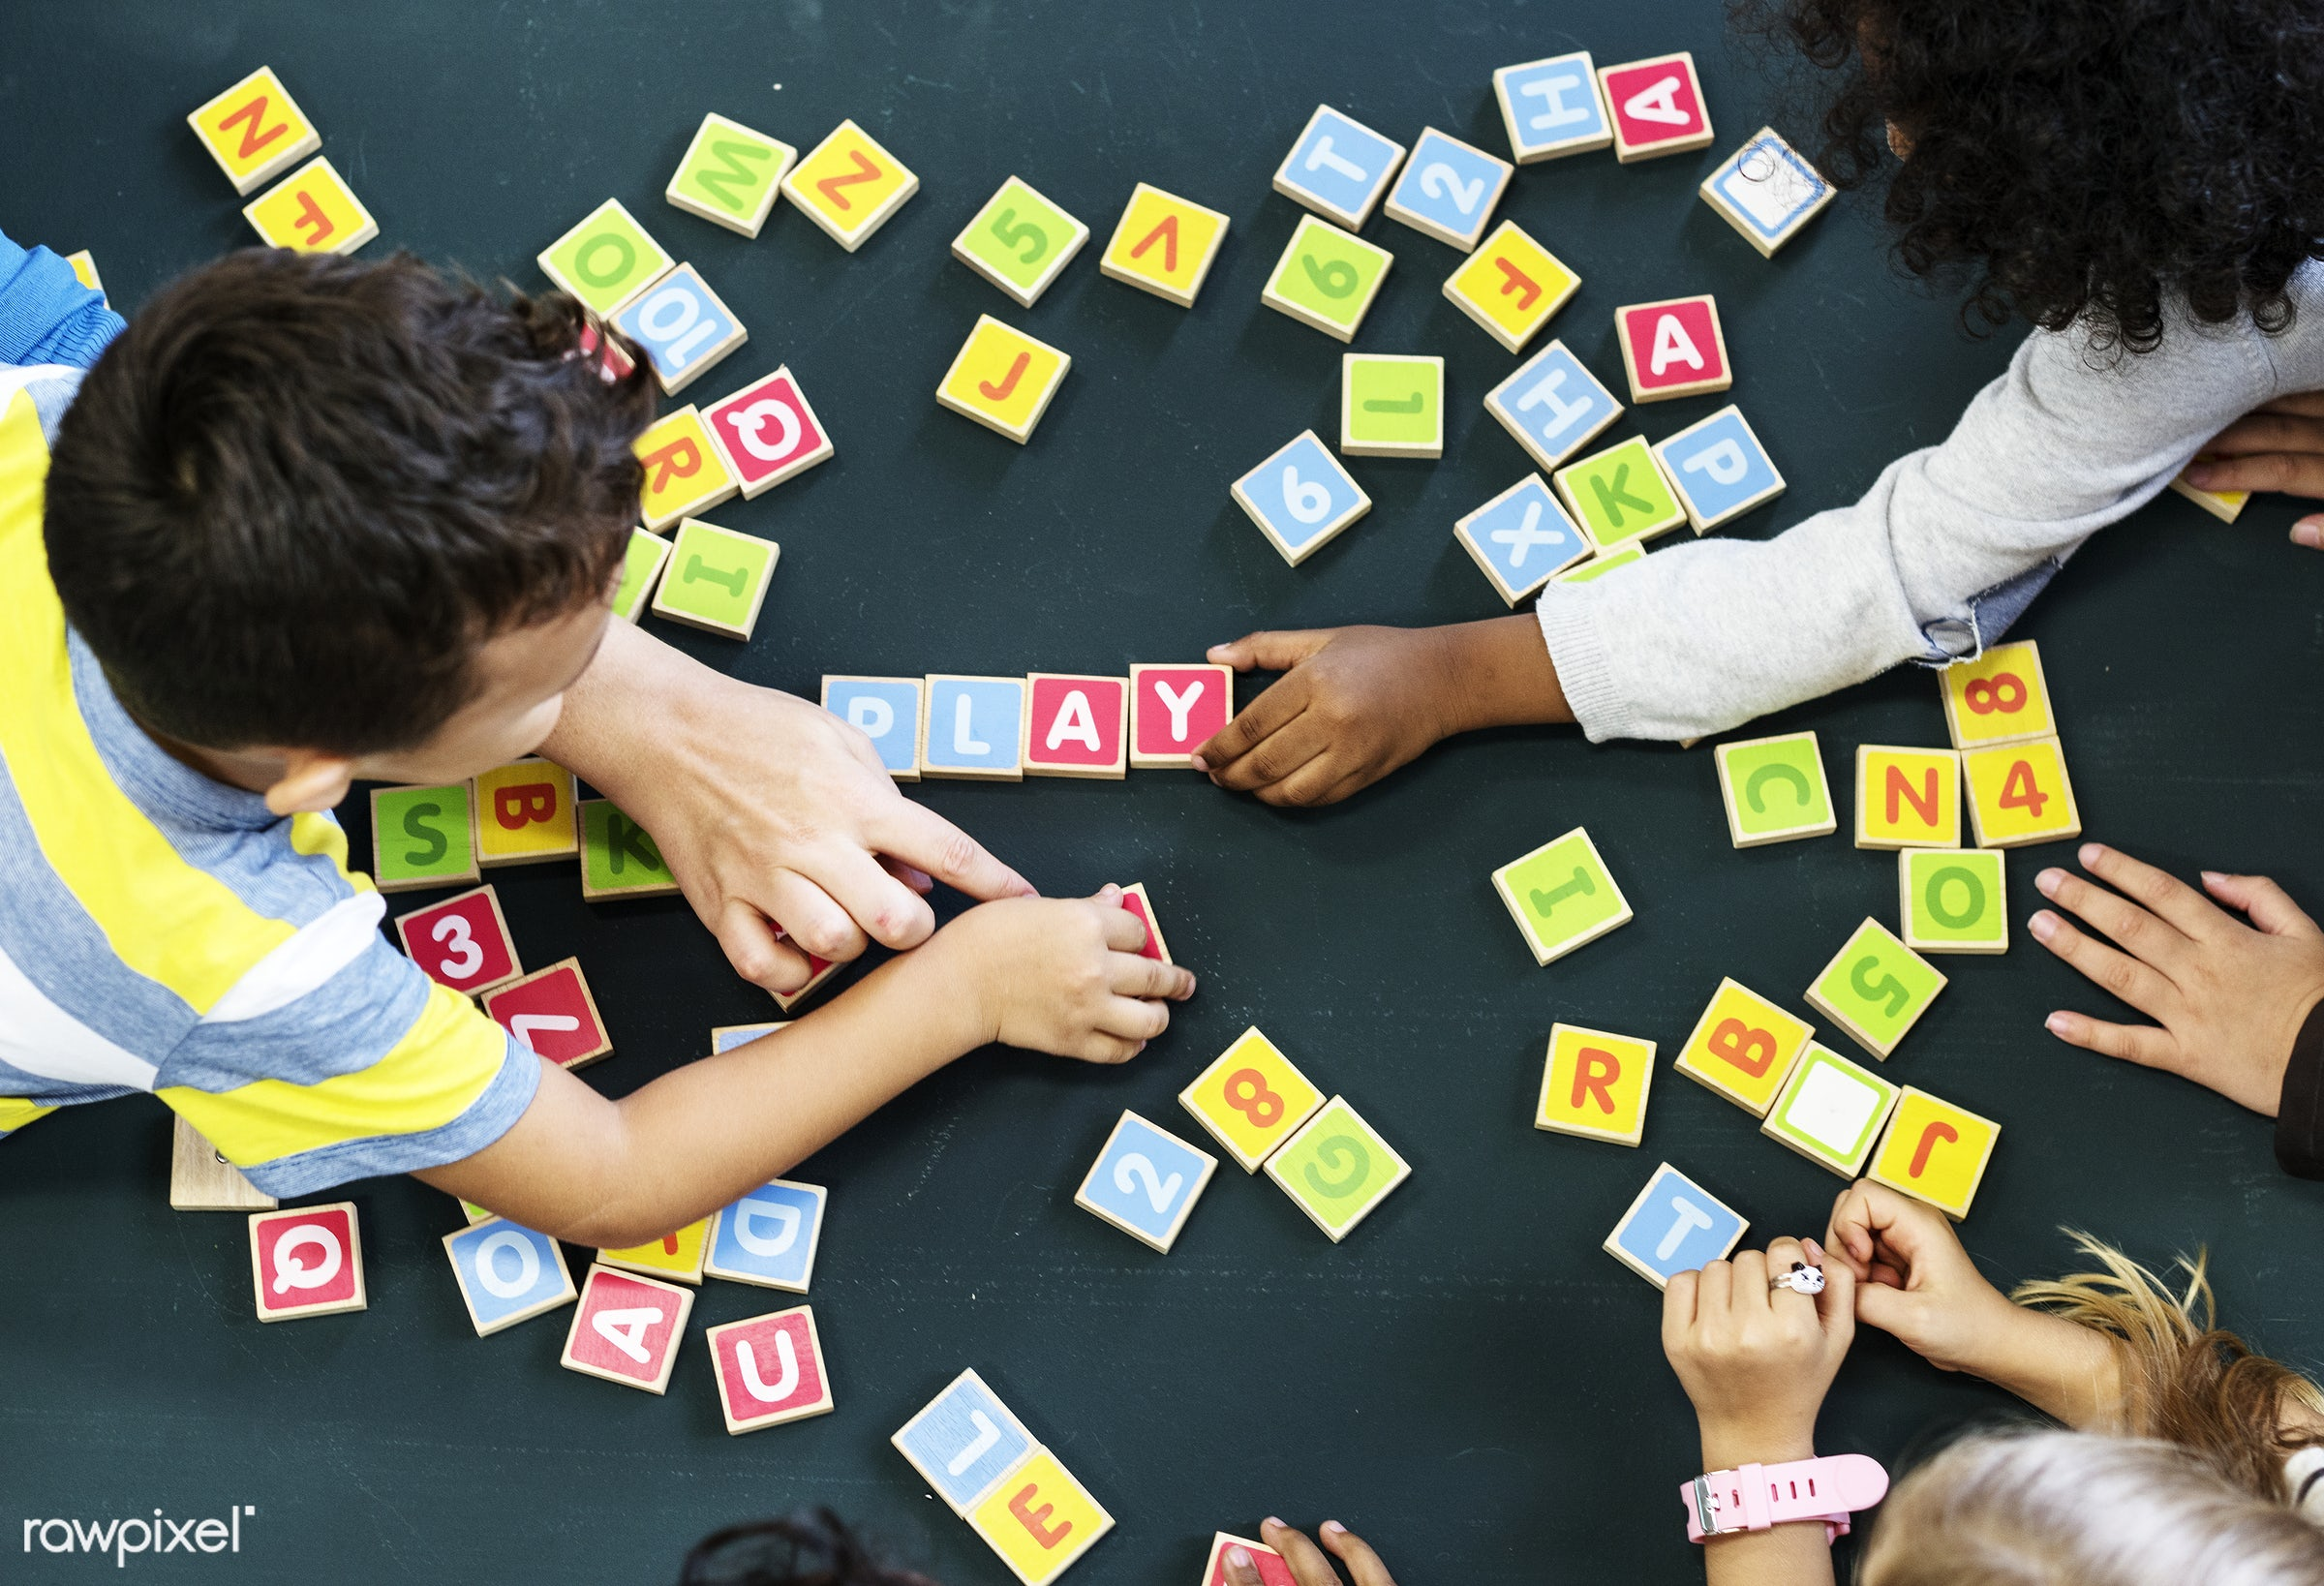 Kids spelling out words with alphabet blocks - aerial, alphabets, black table, childhood, children, education, elementary,...